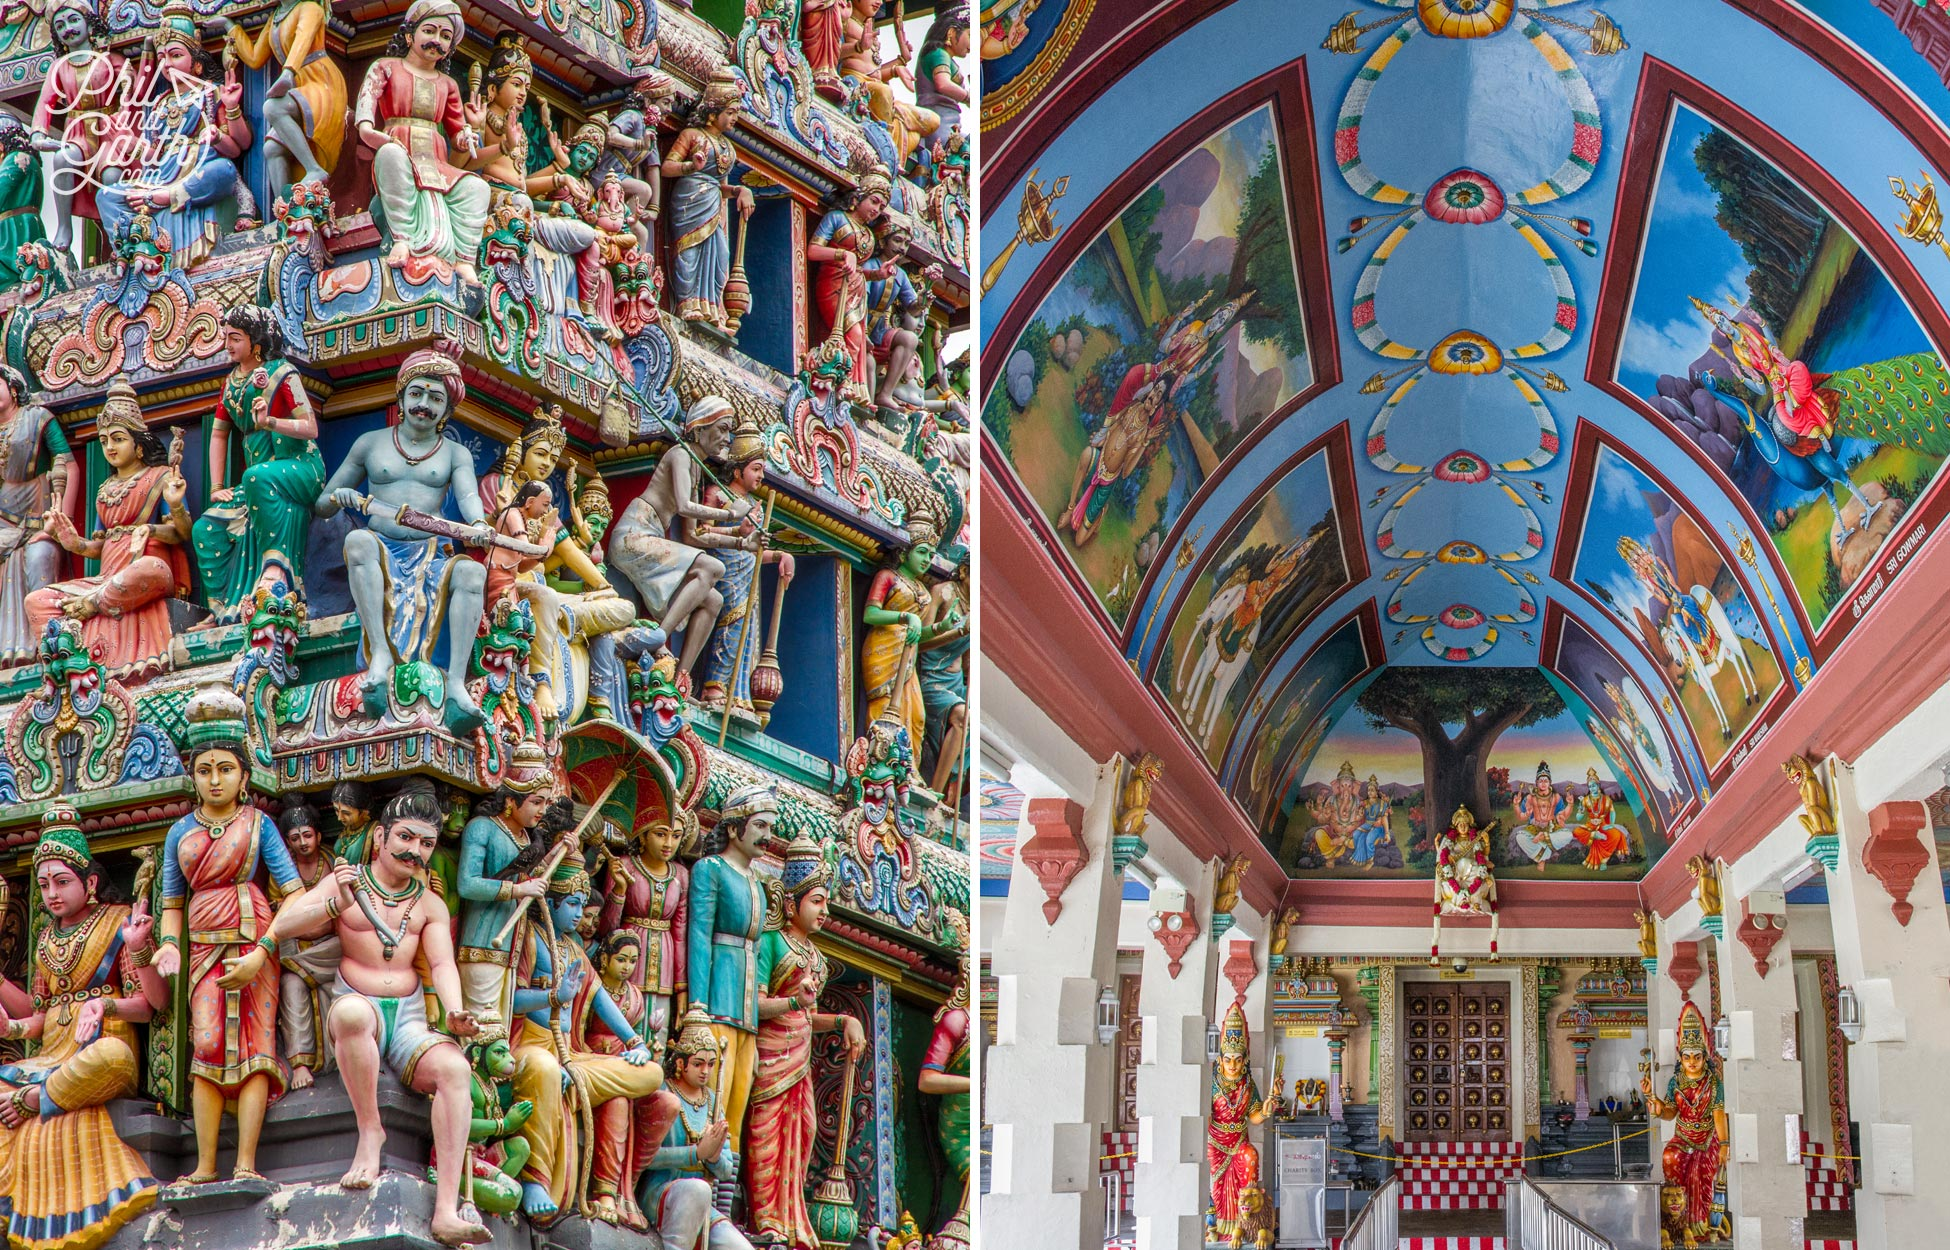 Bursting with colour inside the Sri Mariamman Temple